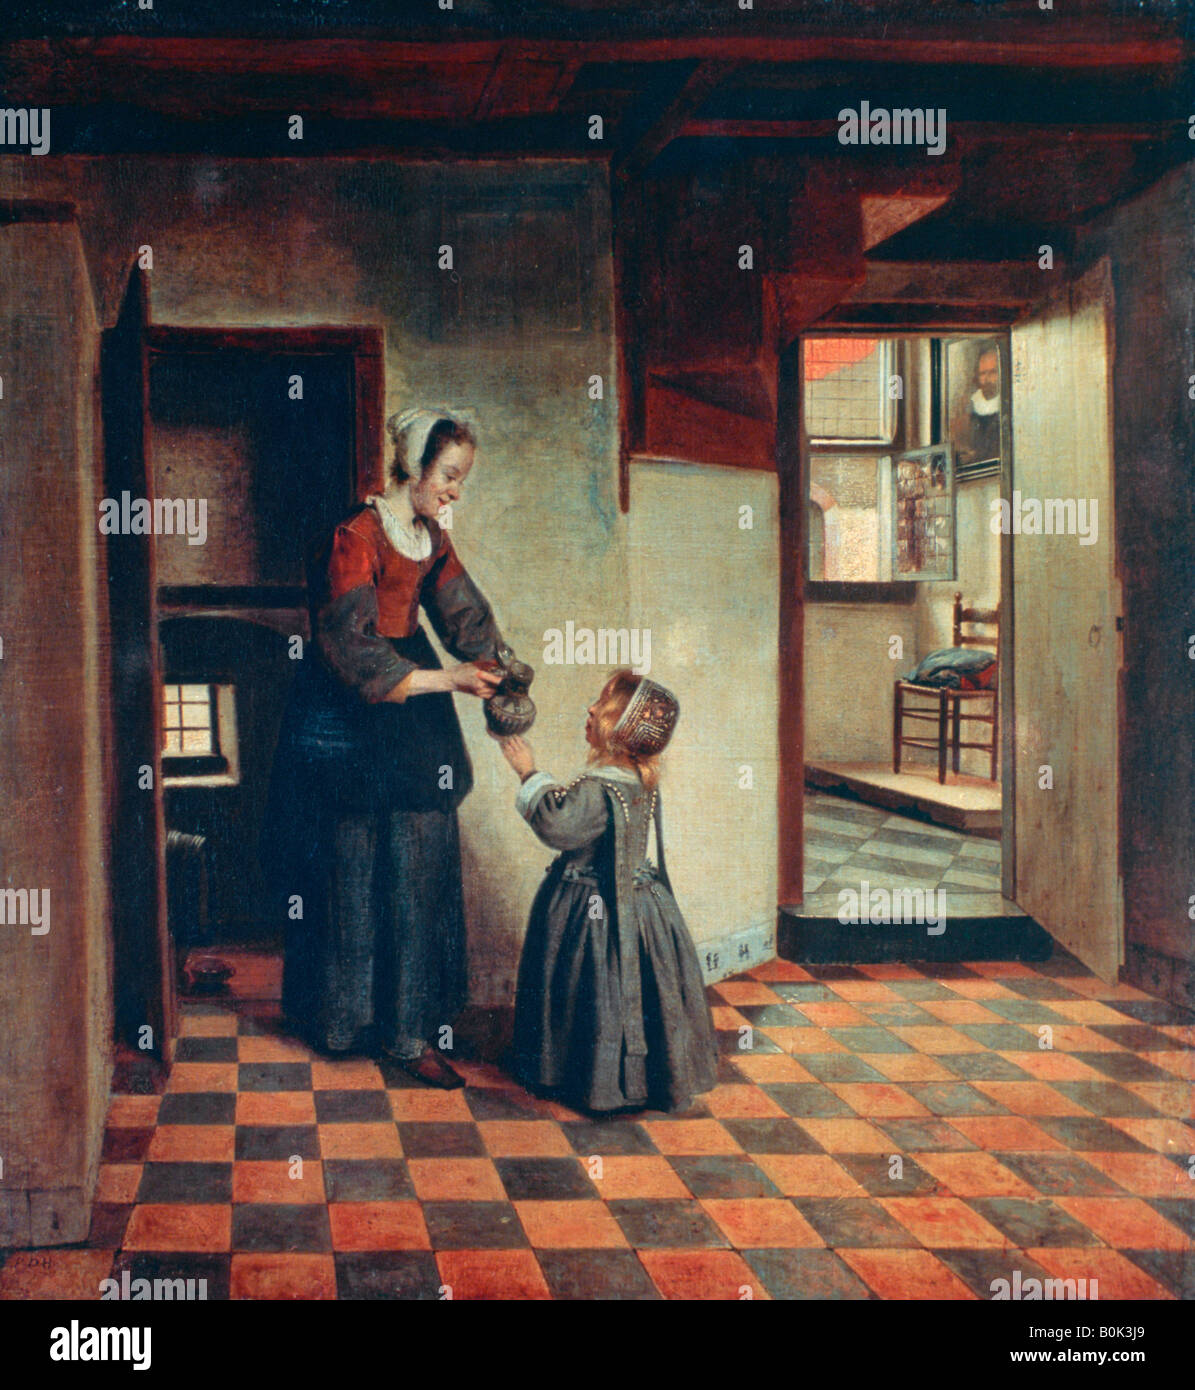 'Woman with a Child in a Pantry', c1660. Artist: Pieter de Hooch - Stock Image